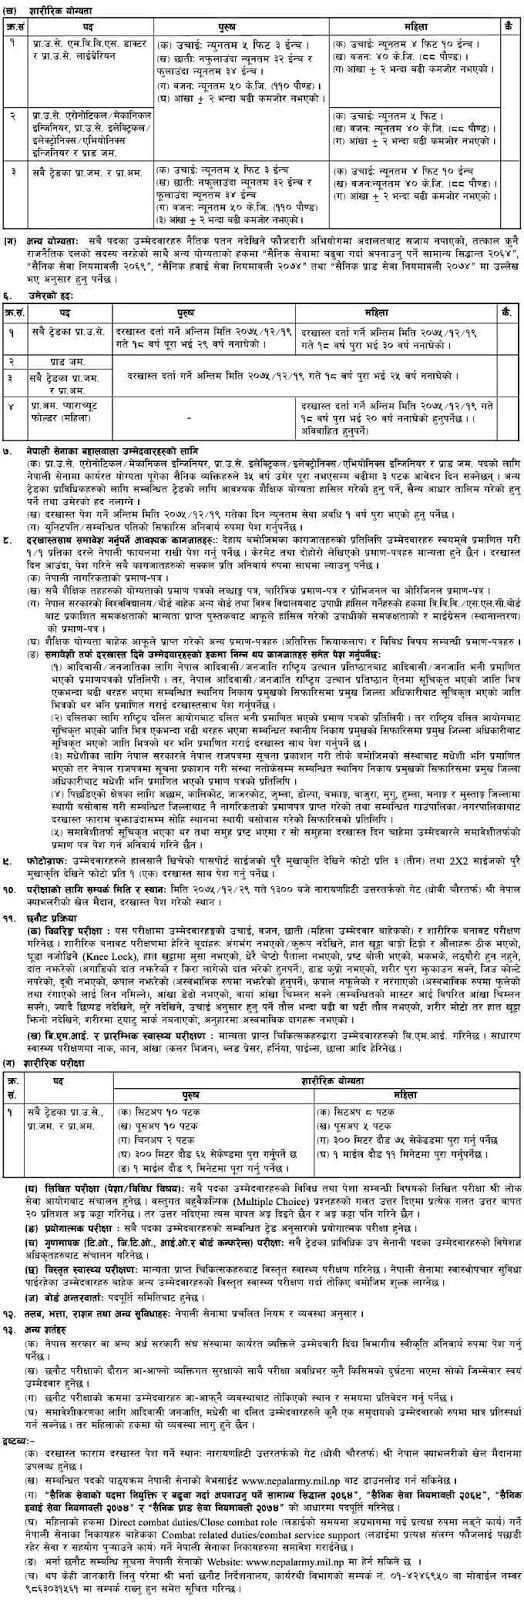 Nepal Army Vacancy Notice